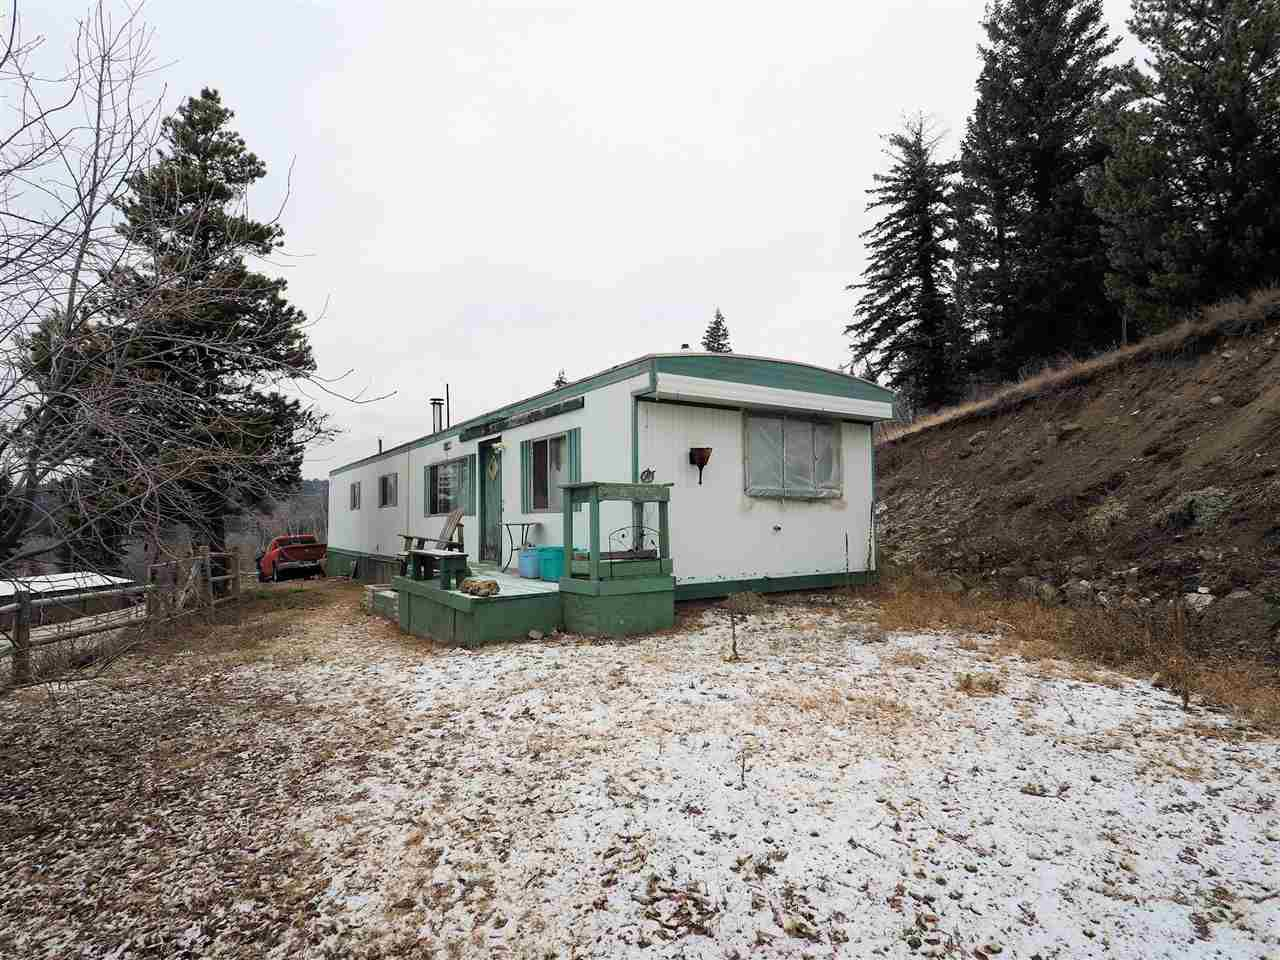 Main Photo: 4331 S CARIBOO (97) Highway: Lac la Hache Manufactured Home for sale (100 Mile House (Zone 10))  : MLS®# R2327477